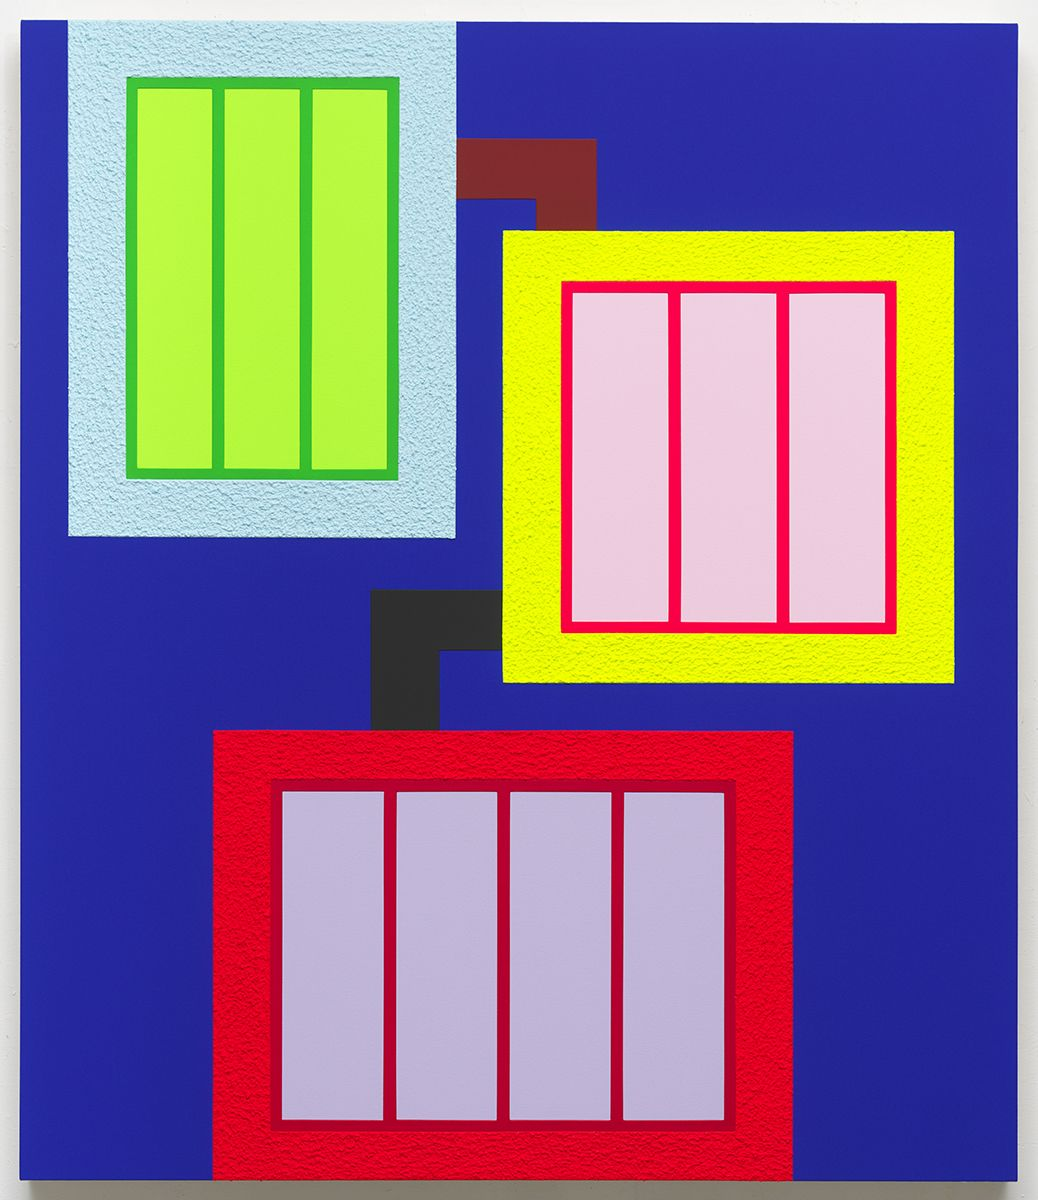 Peter Halley, Sum1, 2017 Acrylic, fluorescent acrylic, Flashe and Roll-A-Tex on canvas 72 x 62 inches (182.9 x 157.5 cm)